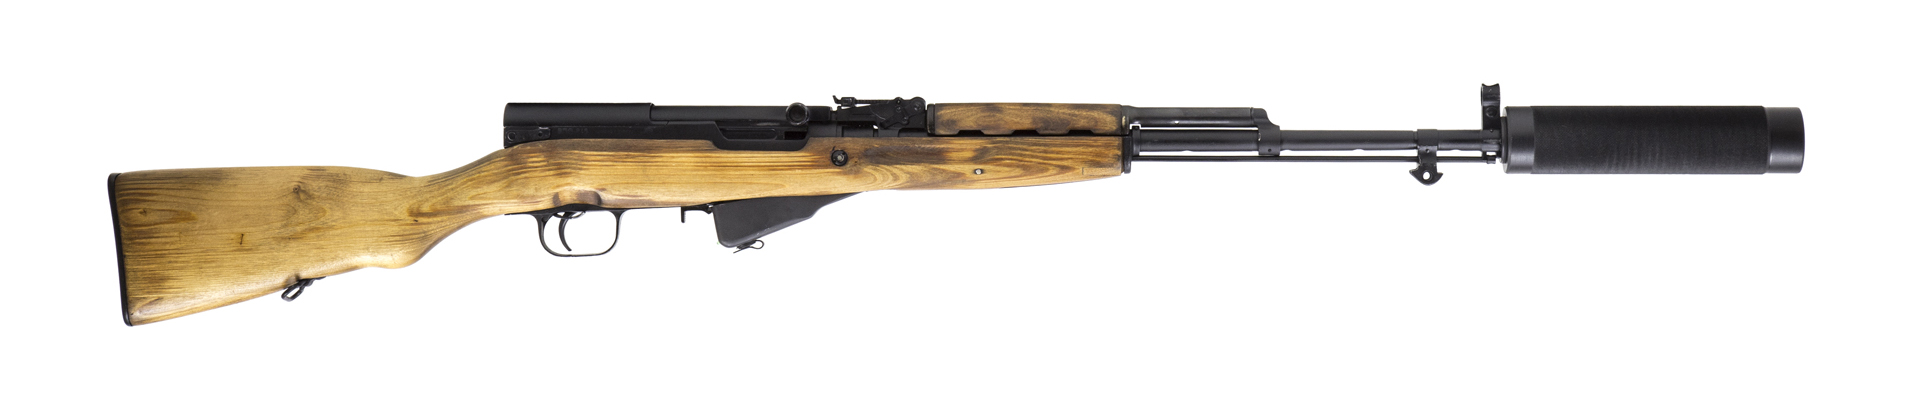 Sks-45 Simonov Steel Edition photo 3